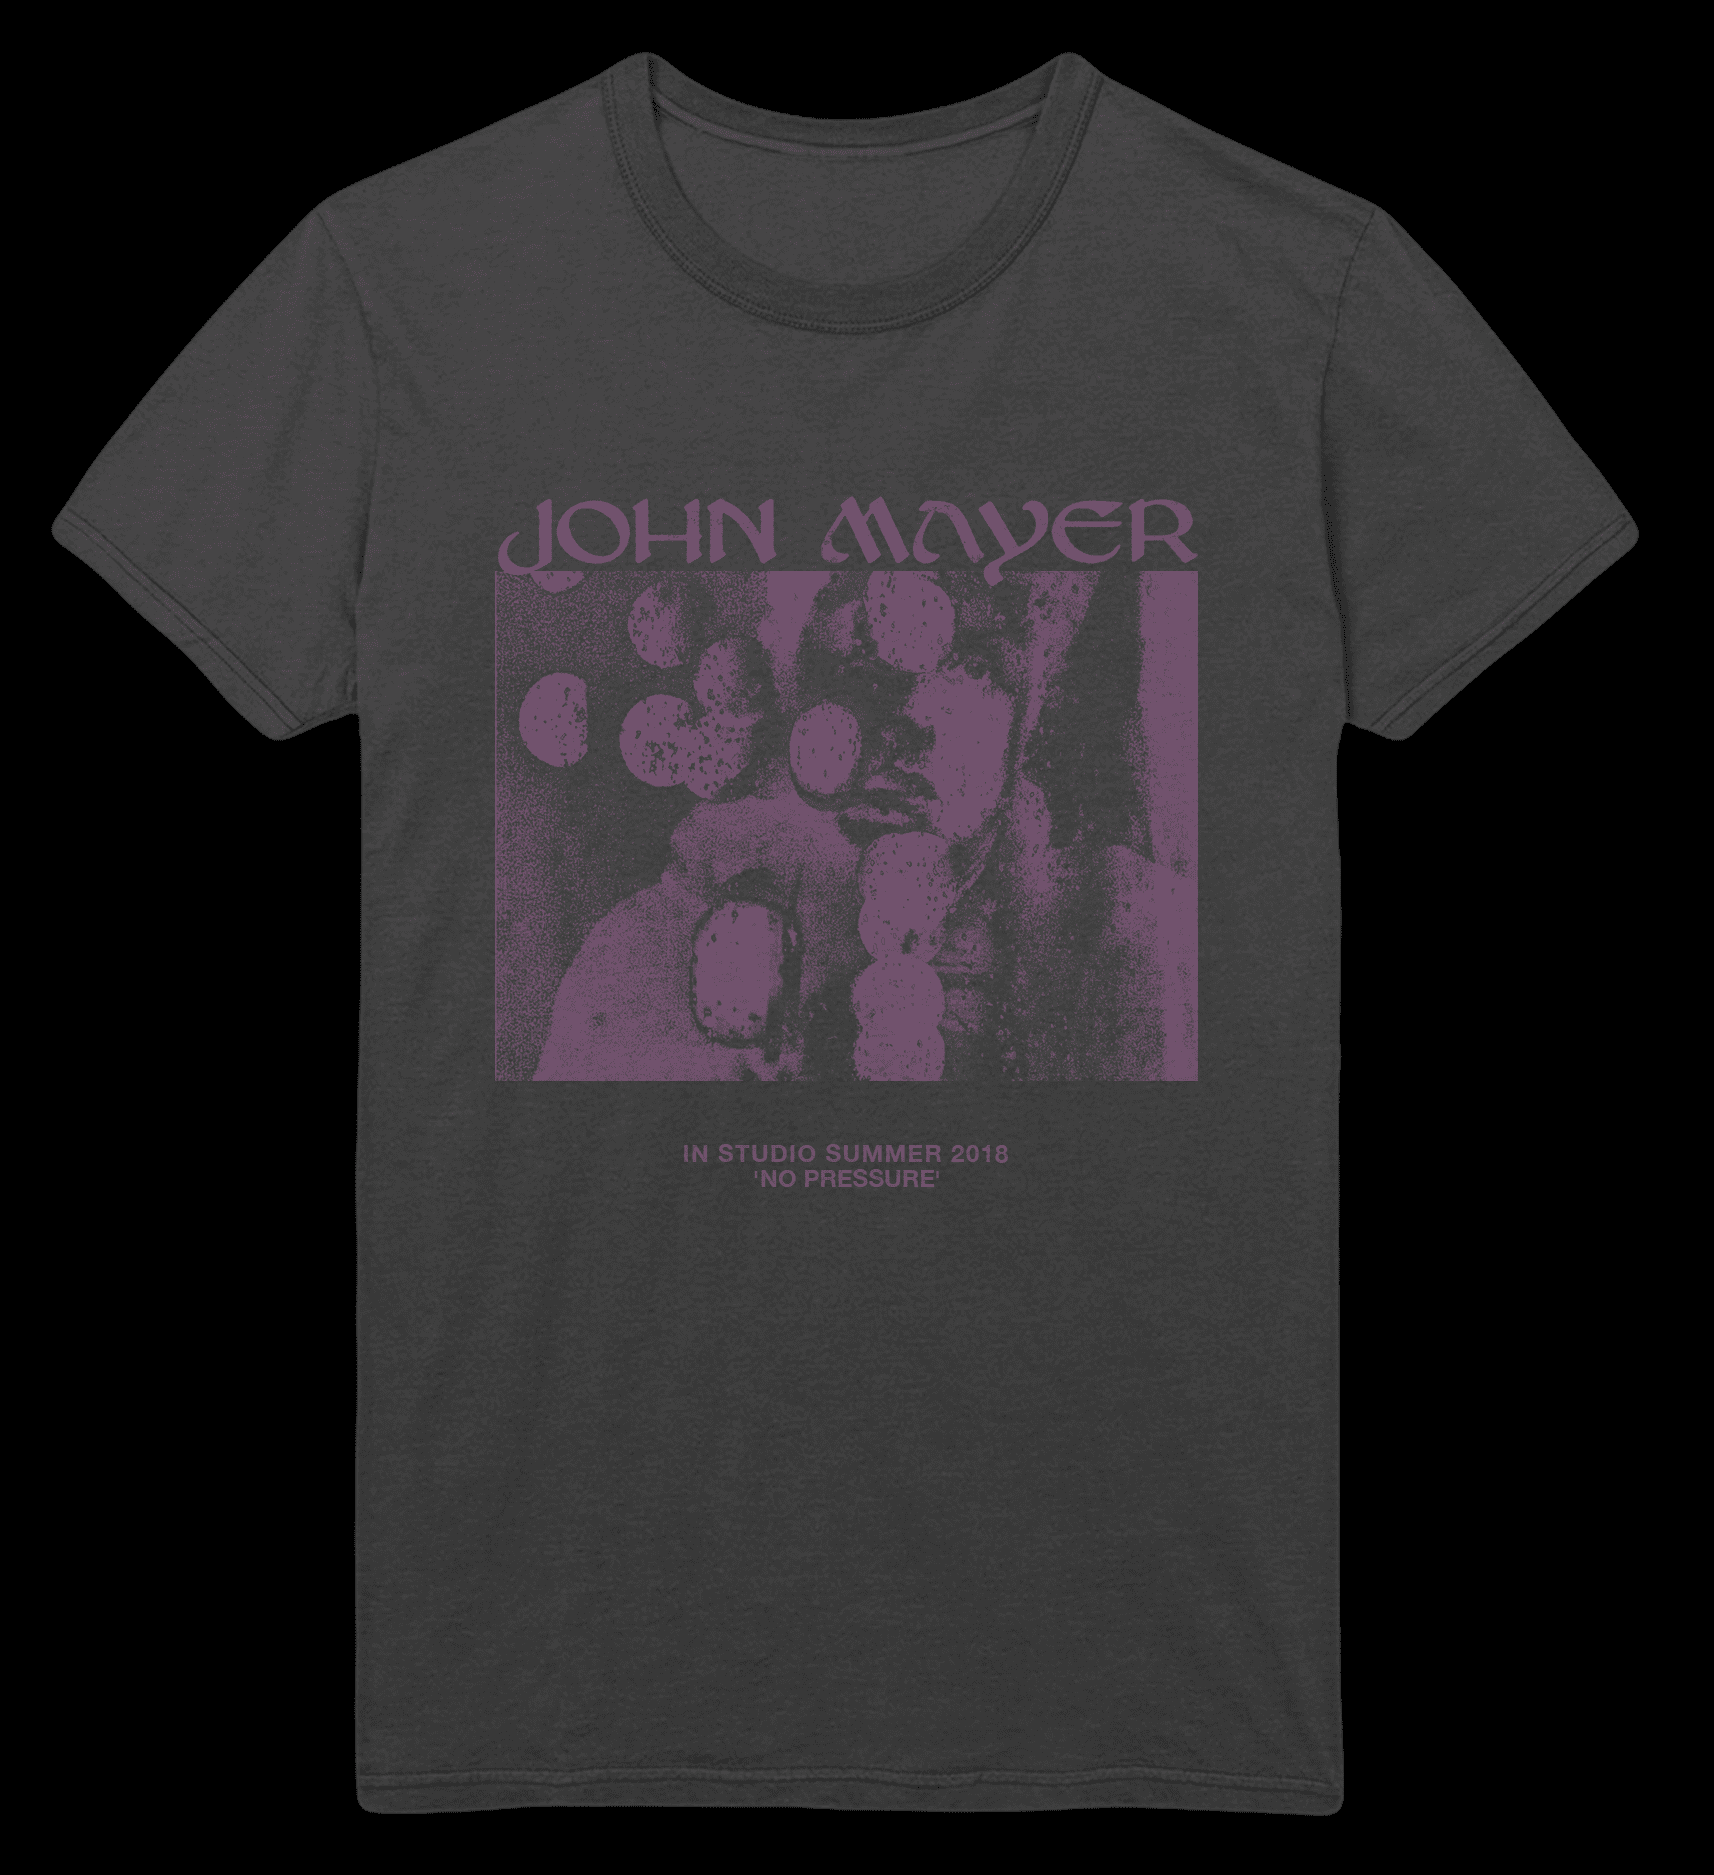 John_mayor_acid face_tee_black